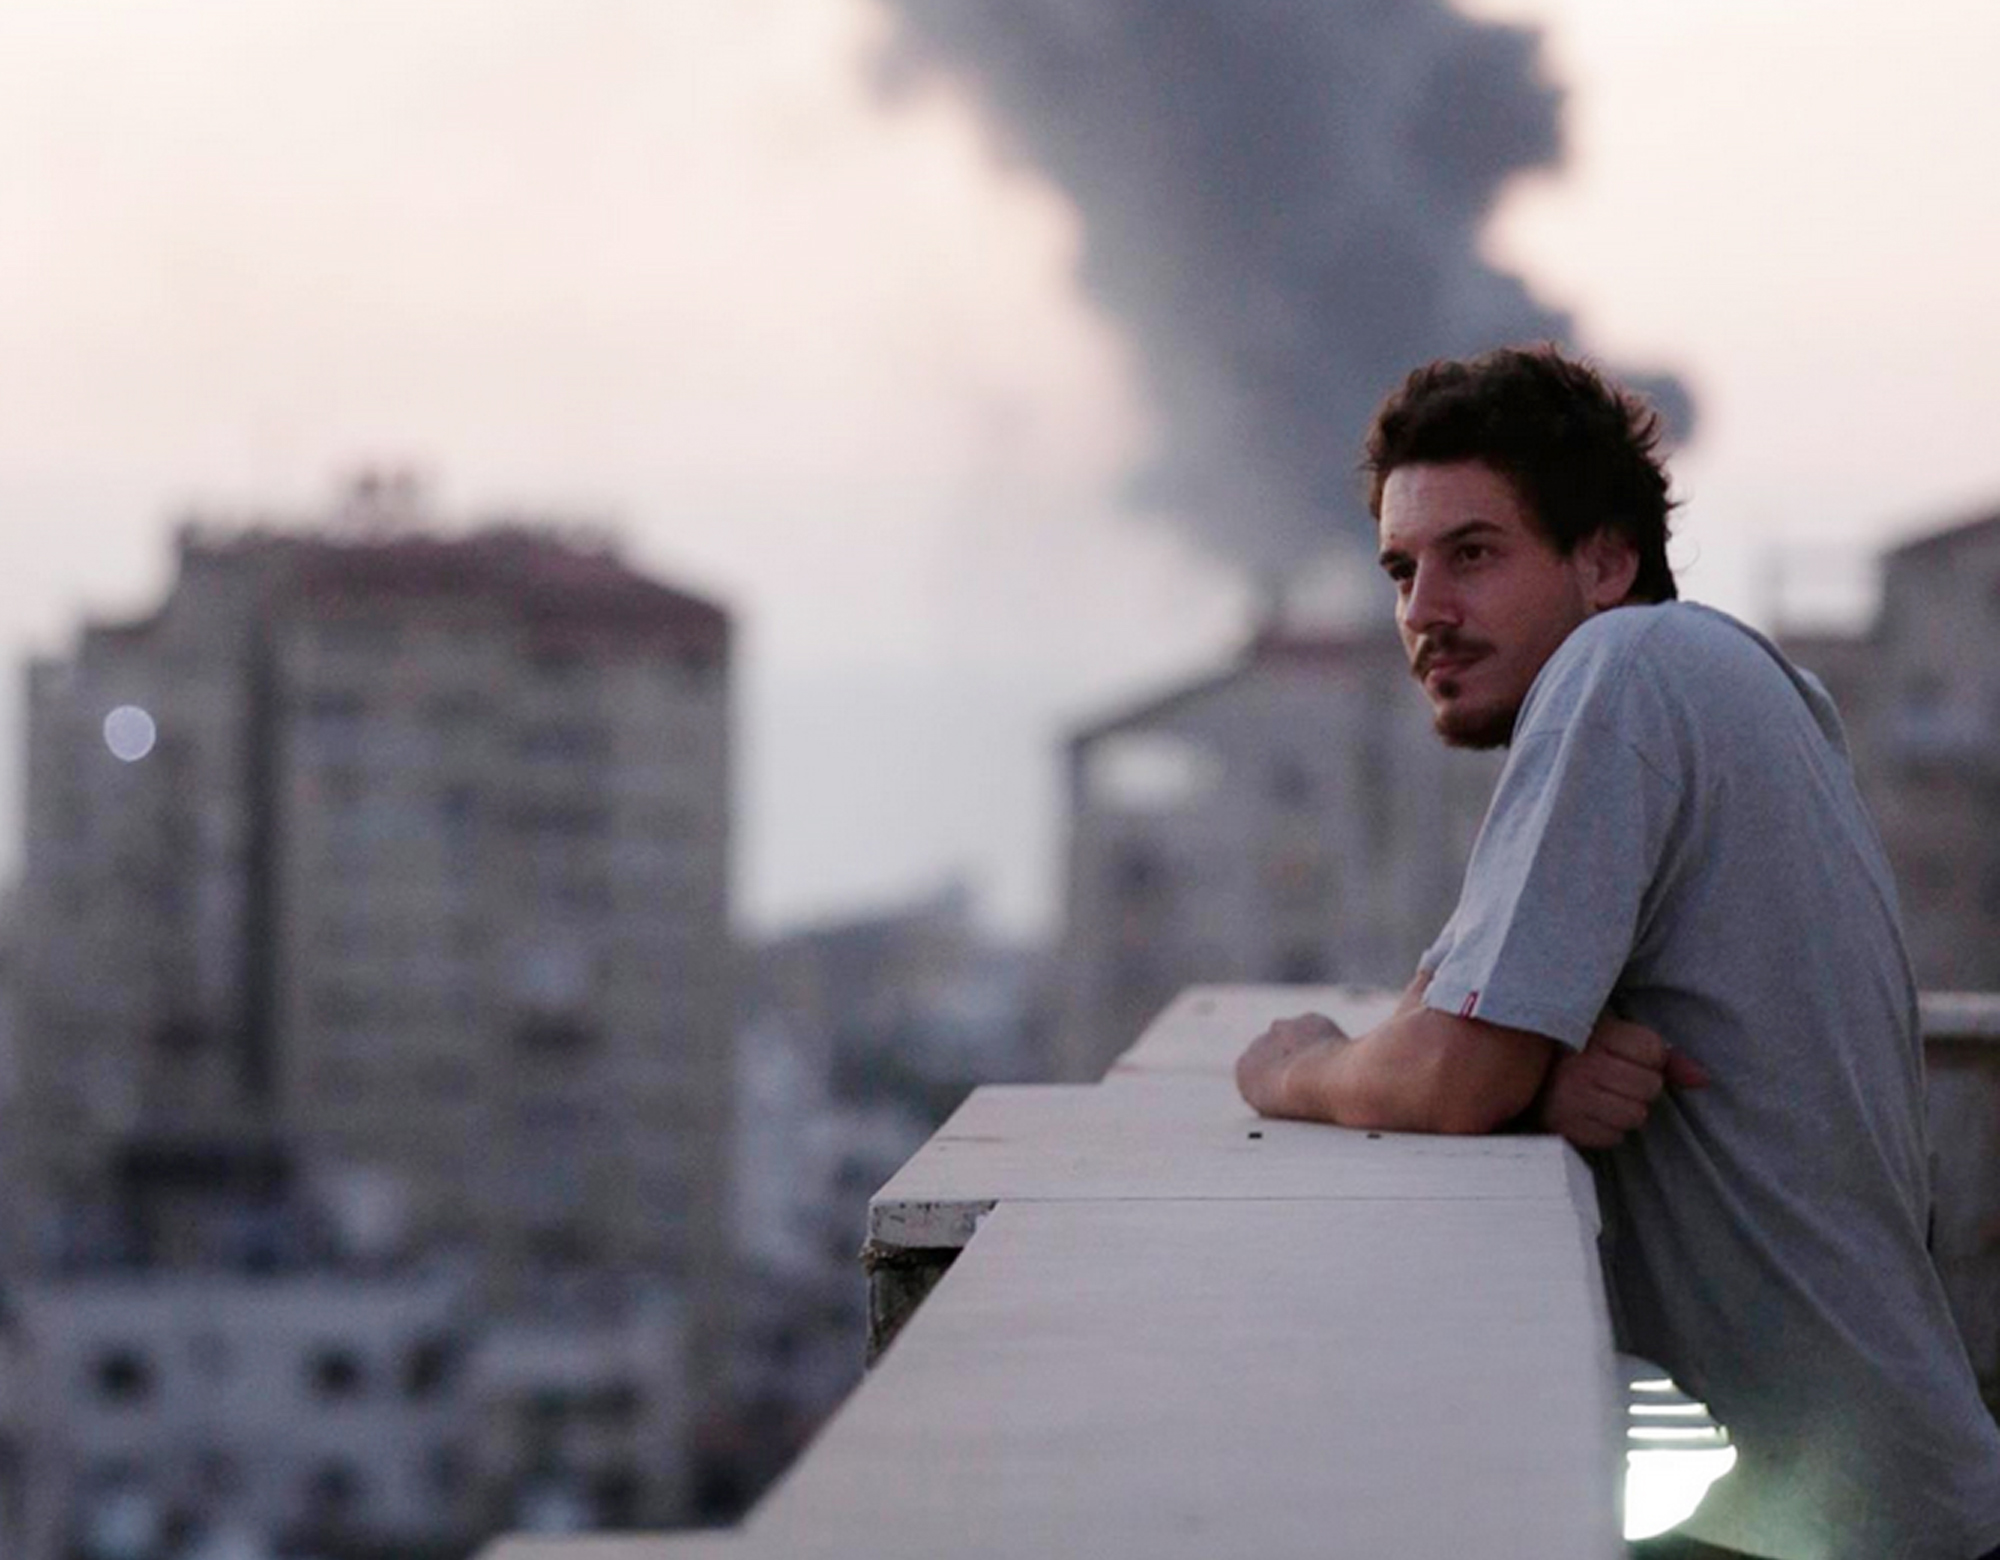 Associated Press video journalist Simone Camilli on a balcony overlooking smoke from Israeli Strikes in Gaza City. Camilli, 35, was killed in an ordnance explosion in the Gaza Strip, on Aug. 13, 2014 together with Palestinian translator Ali Shehda Abu Afash and three members of the Gaza police.